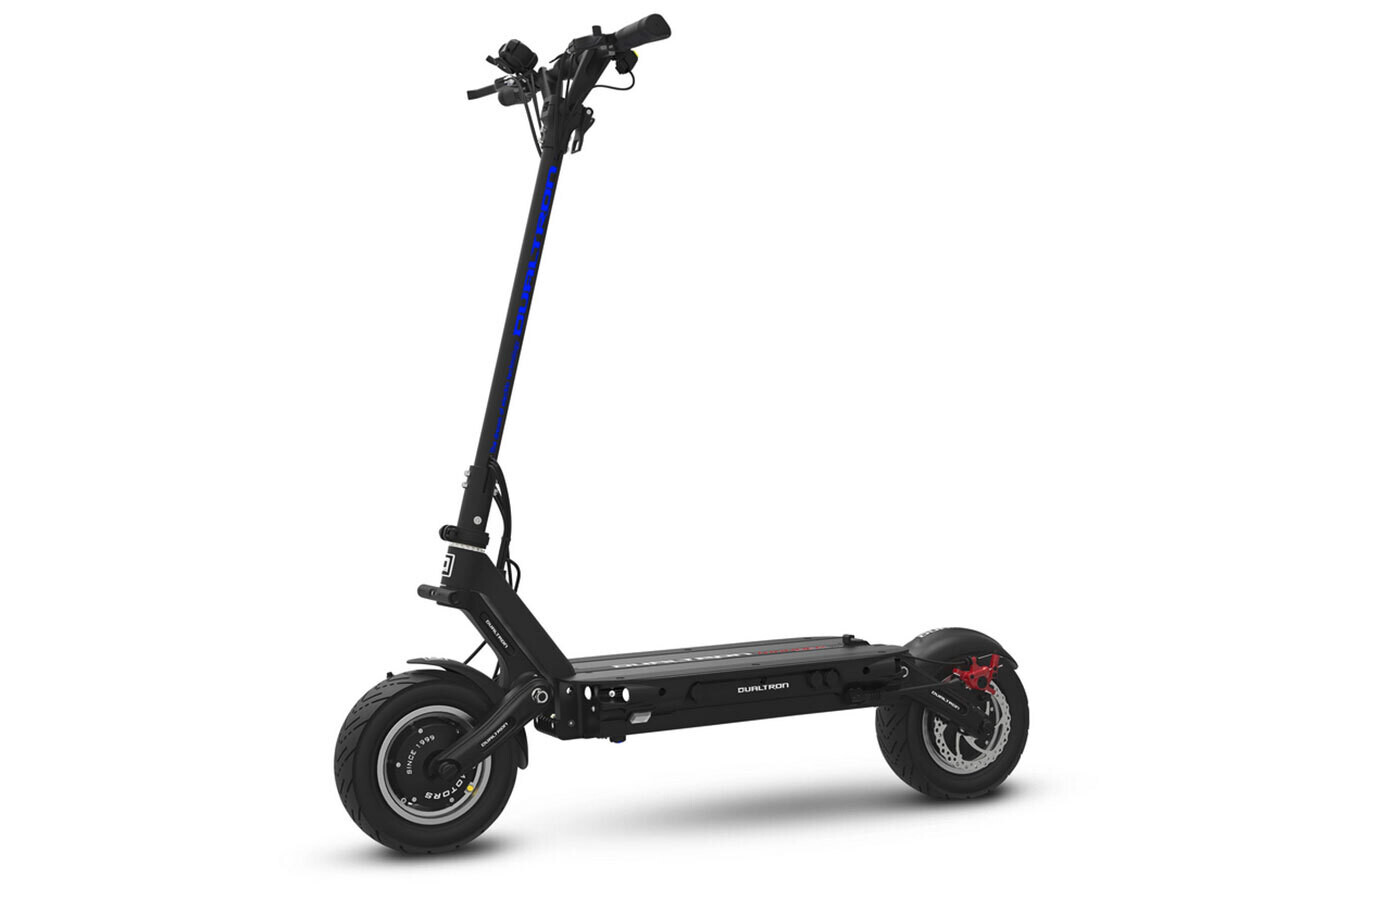 Dualtron Thunder Electric Scooter - 50 MPH - 75 Mile Range